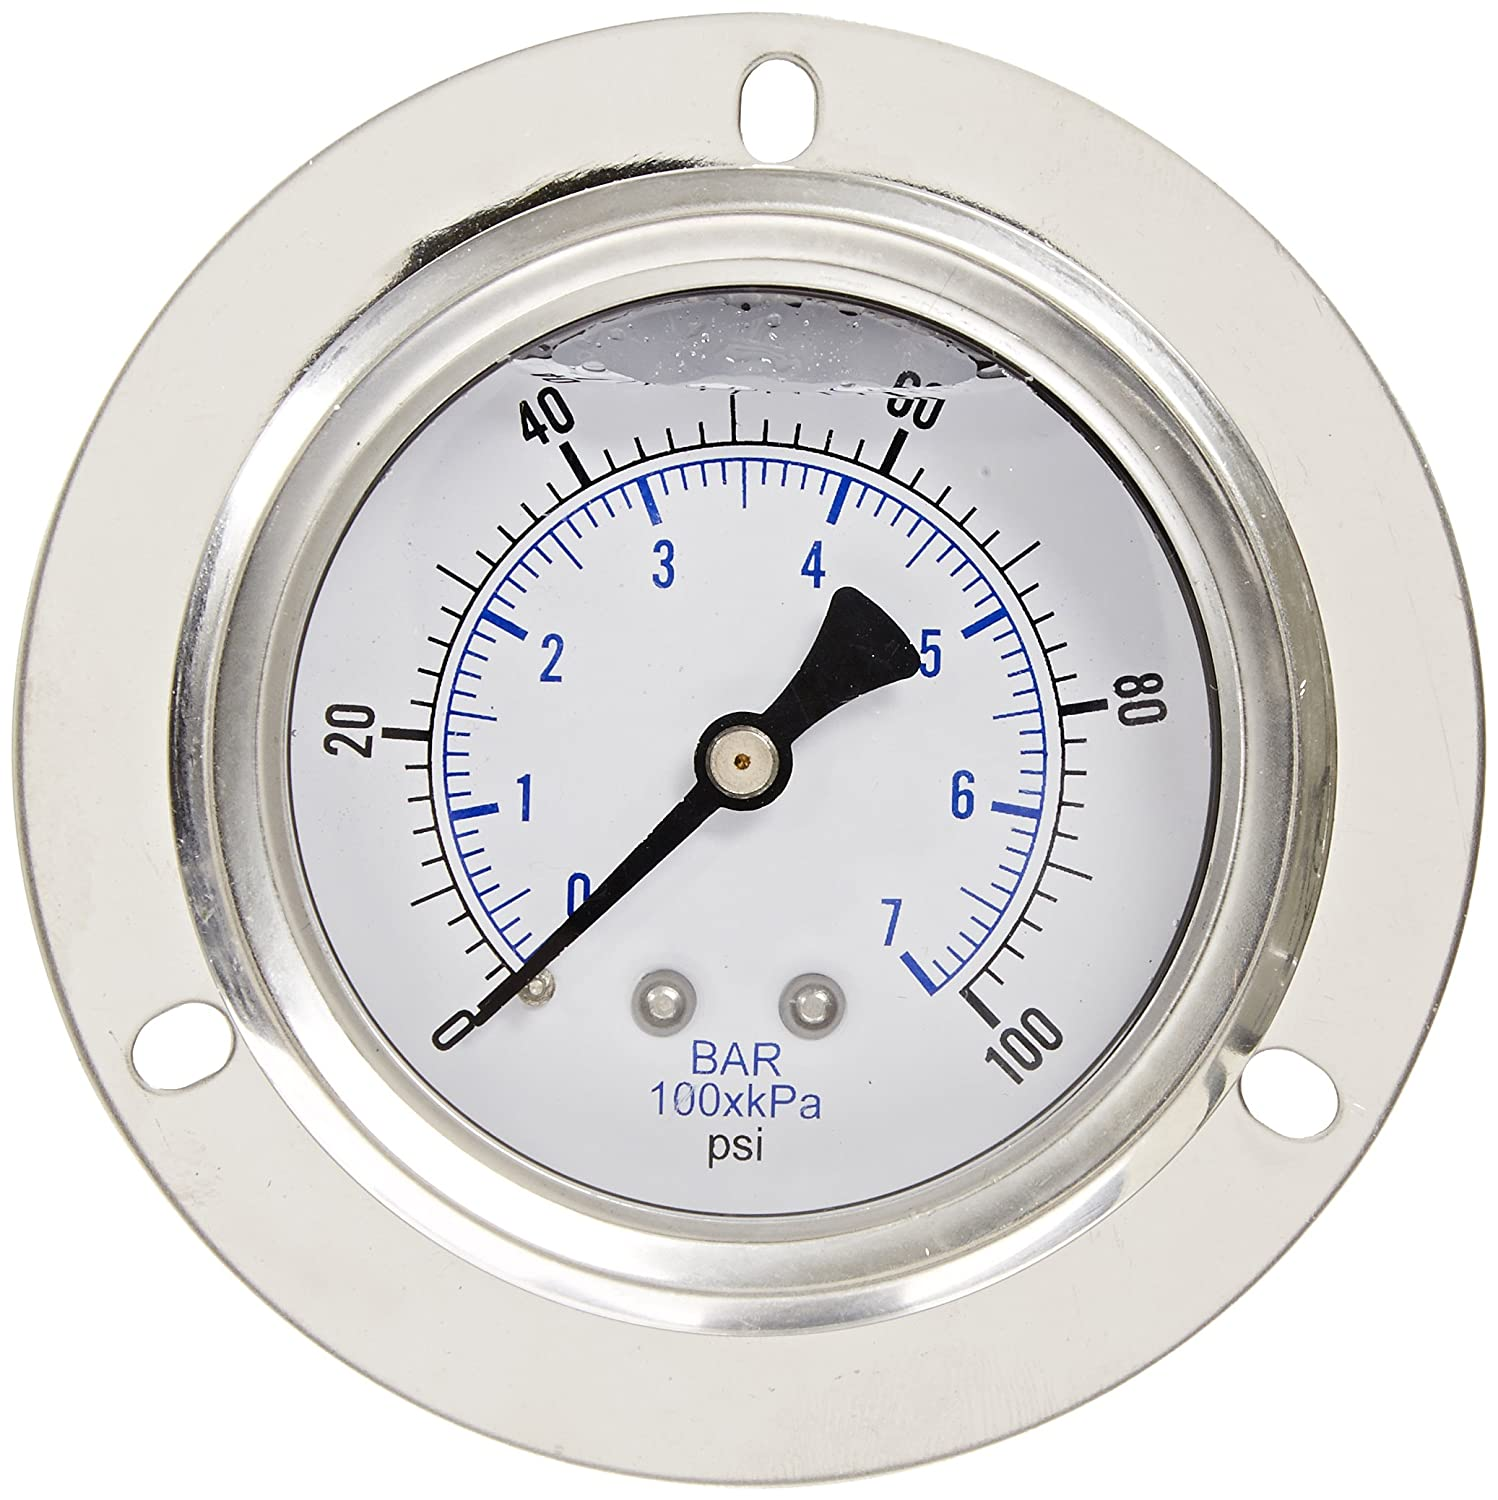 PIC Gauge PRO 204L 254E Glycerin Filled Industrial Front Flanged Panel Mount Pressure Gauge with Stainless Steel Case Brass Internals Plastic Lens 2 1 2 Dial Size 1 4 Male NPT 0 100 psi